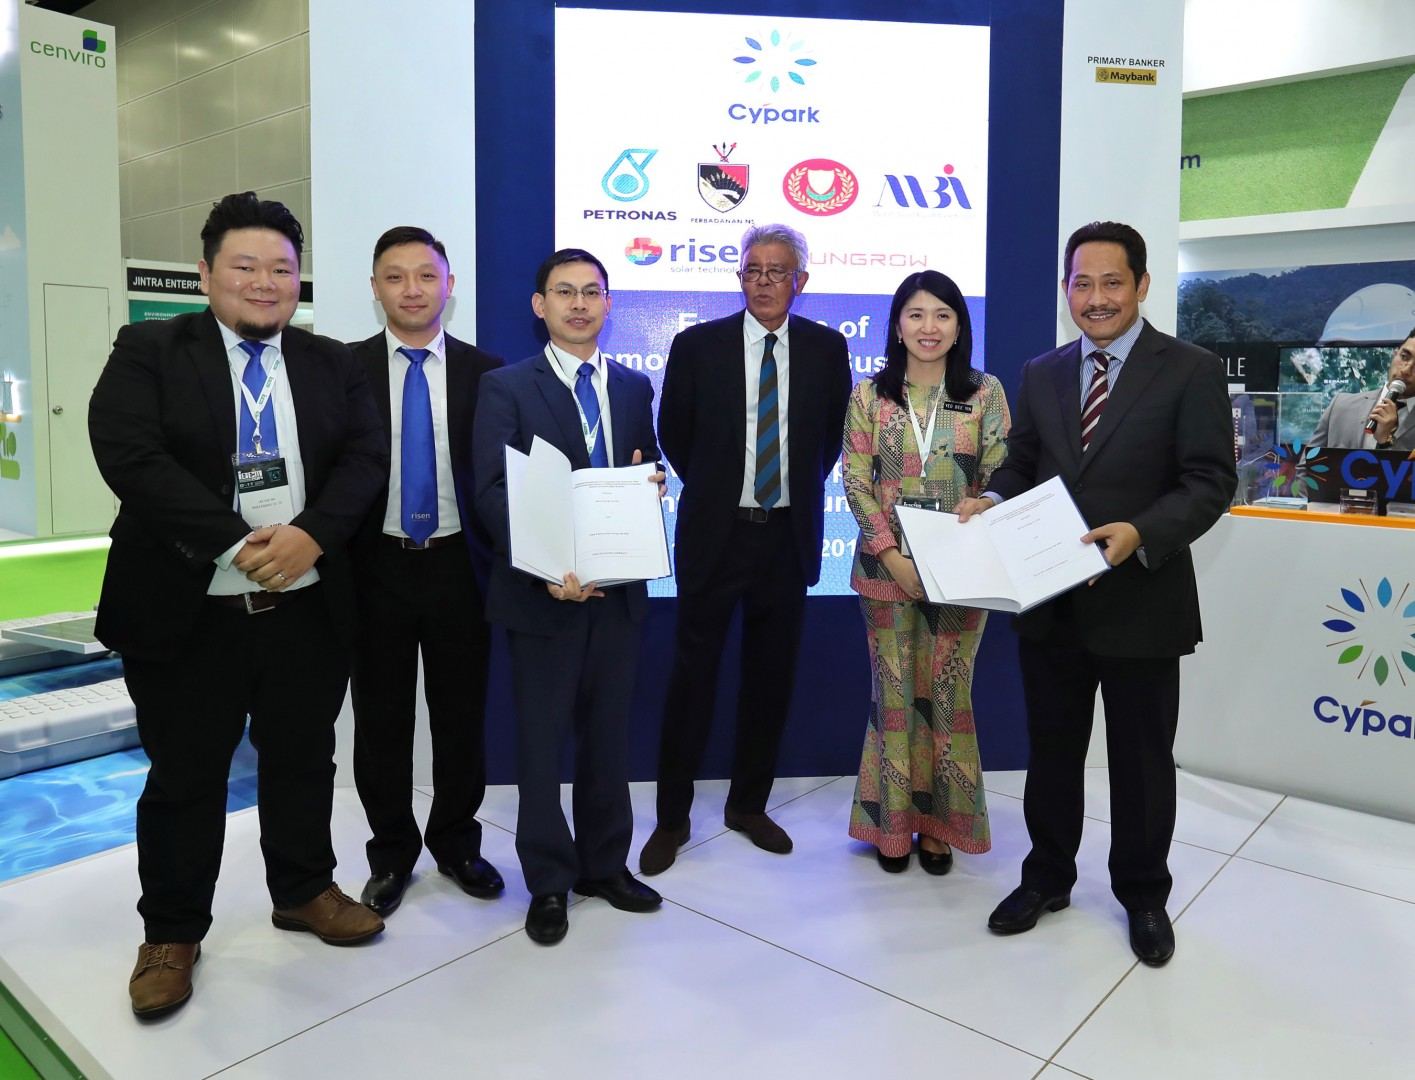 Malaysia's Minister of Energy, Science, Technology, Environment and Climate Change Yb Yeo Bee Yin attended the agreement signing ceremony. Image: Risen Energy